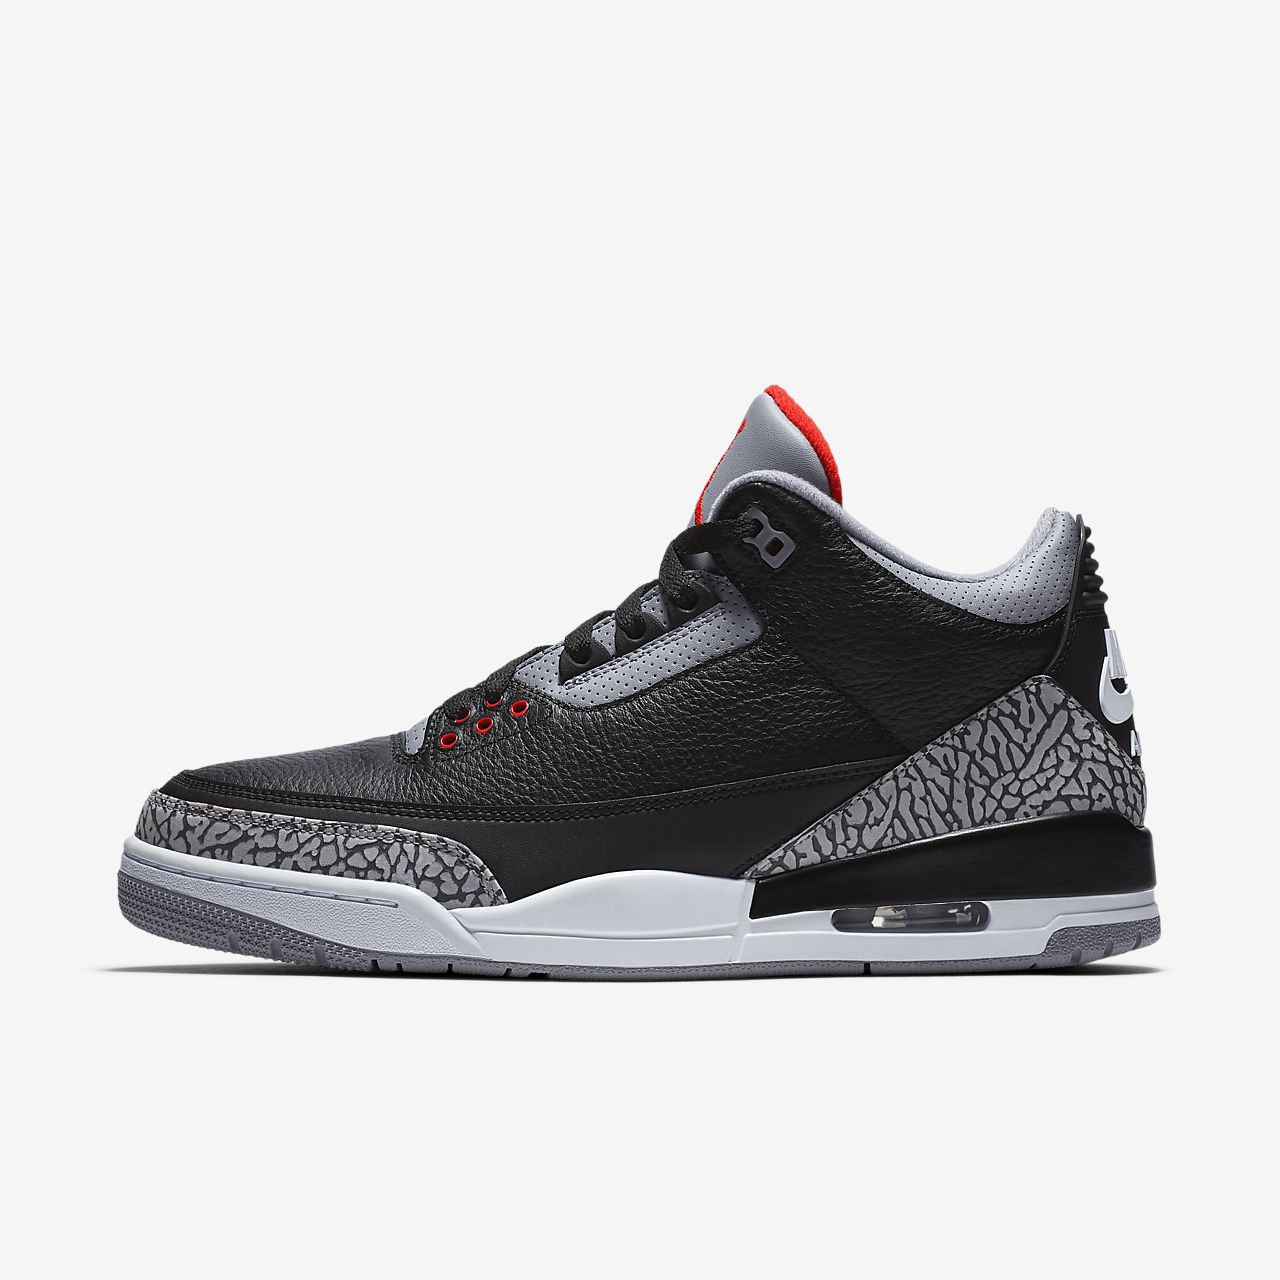 ... Air Jordan 3 Retro OG Men's Shoe